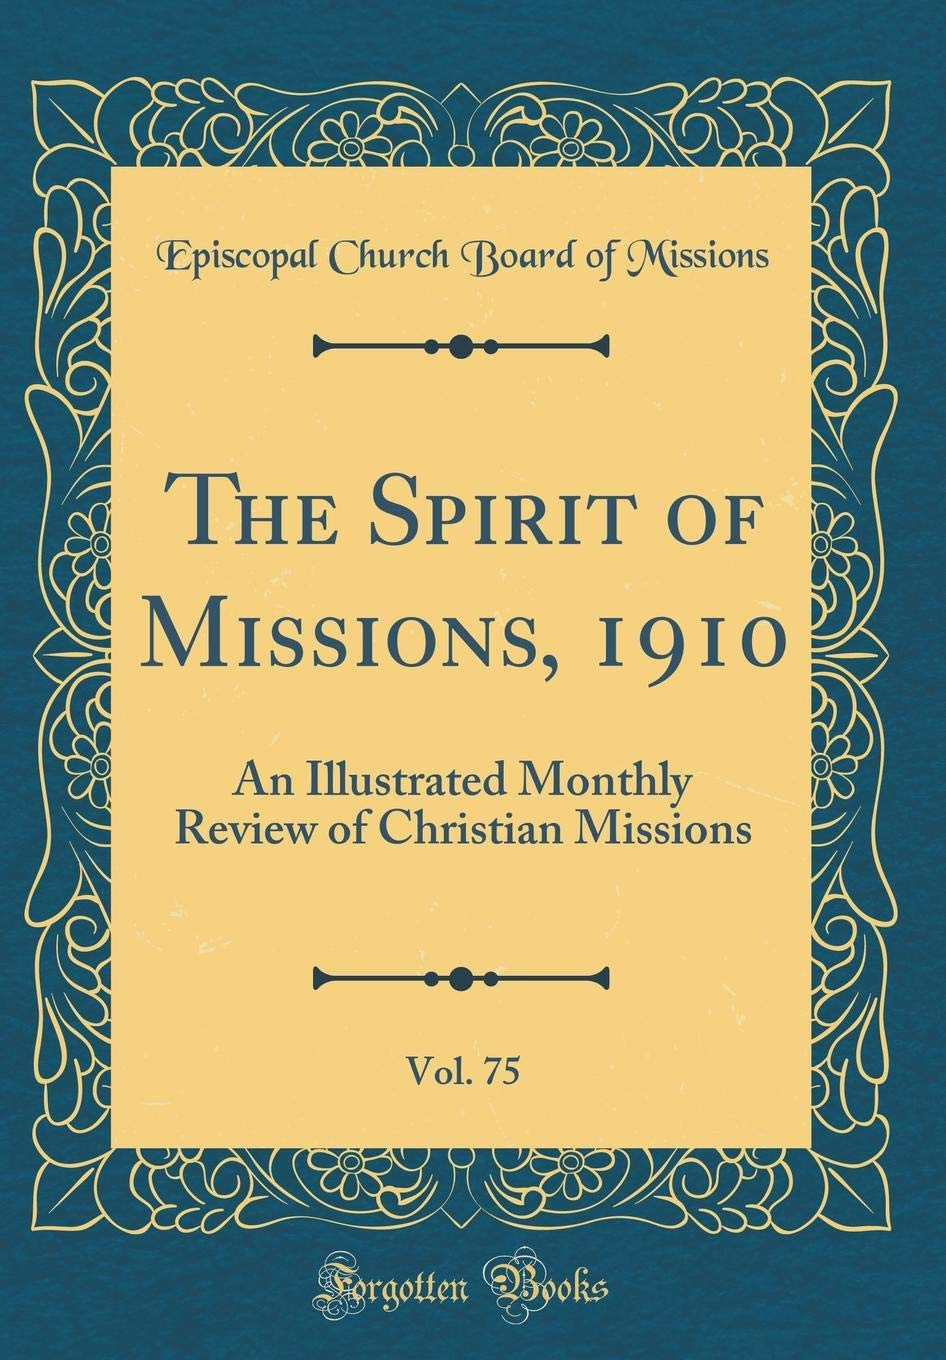 The Spirit of Missions, 1910, Vol. 75: An Illustrated Monthly Review of Christian Missions (Classic Reprint) ebook